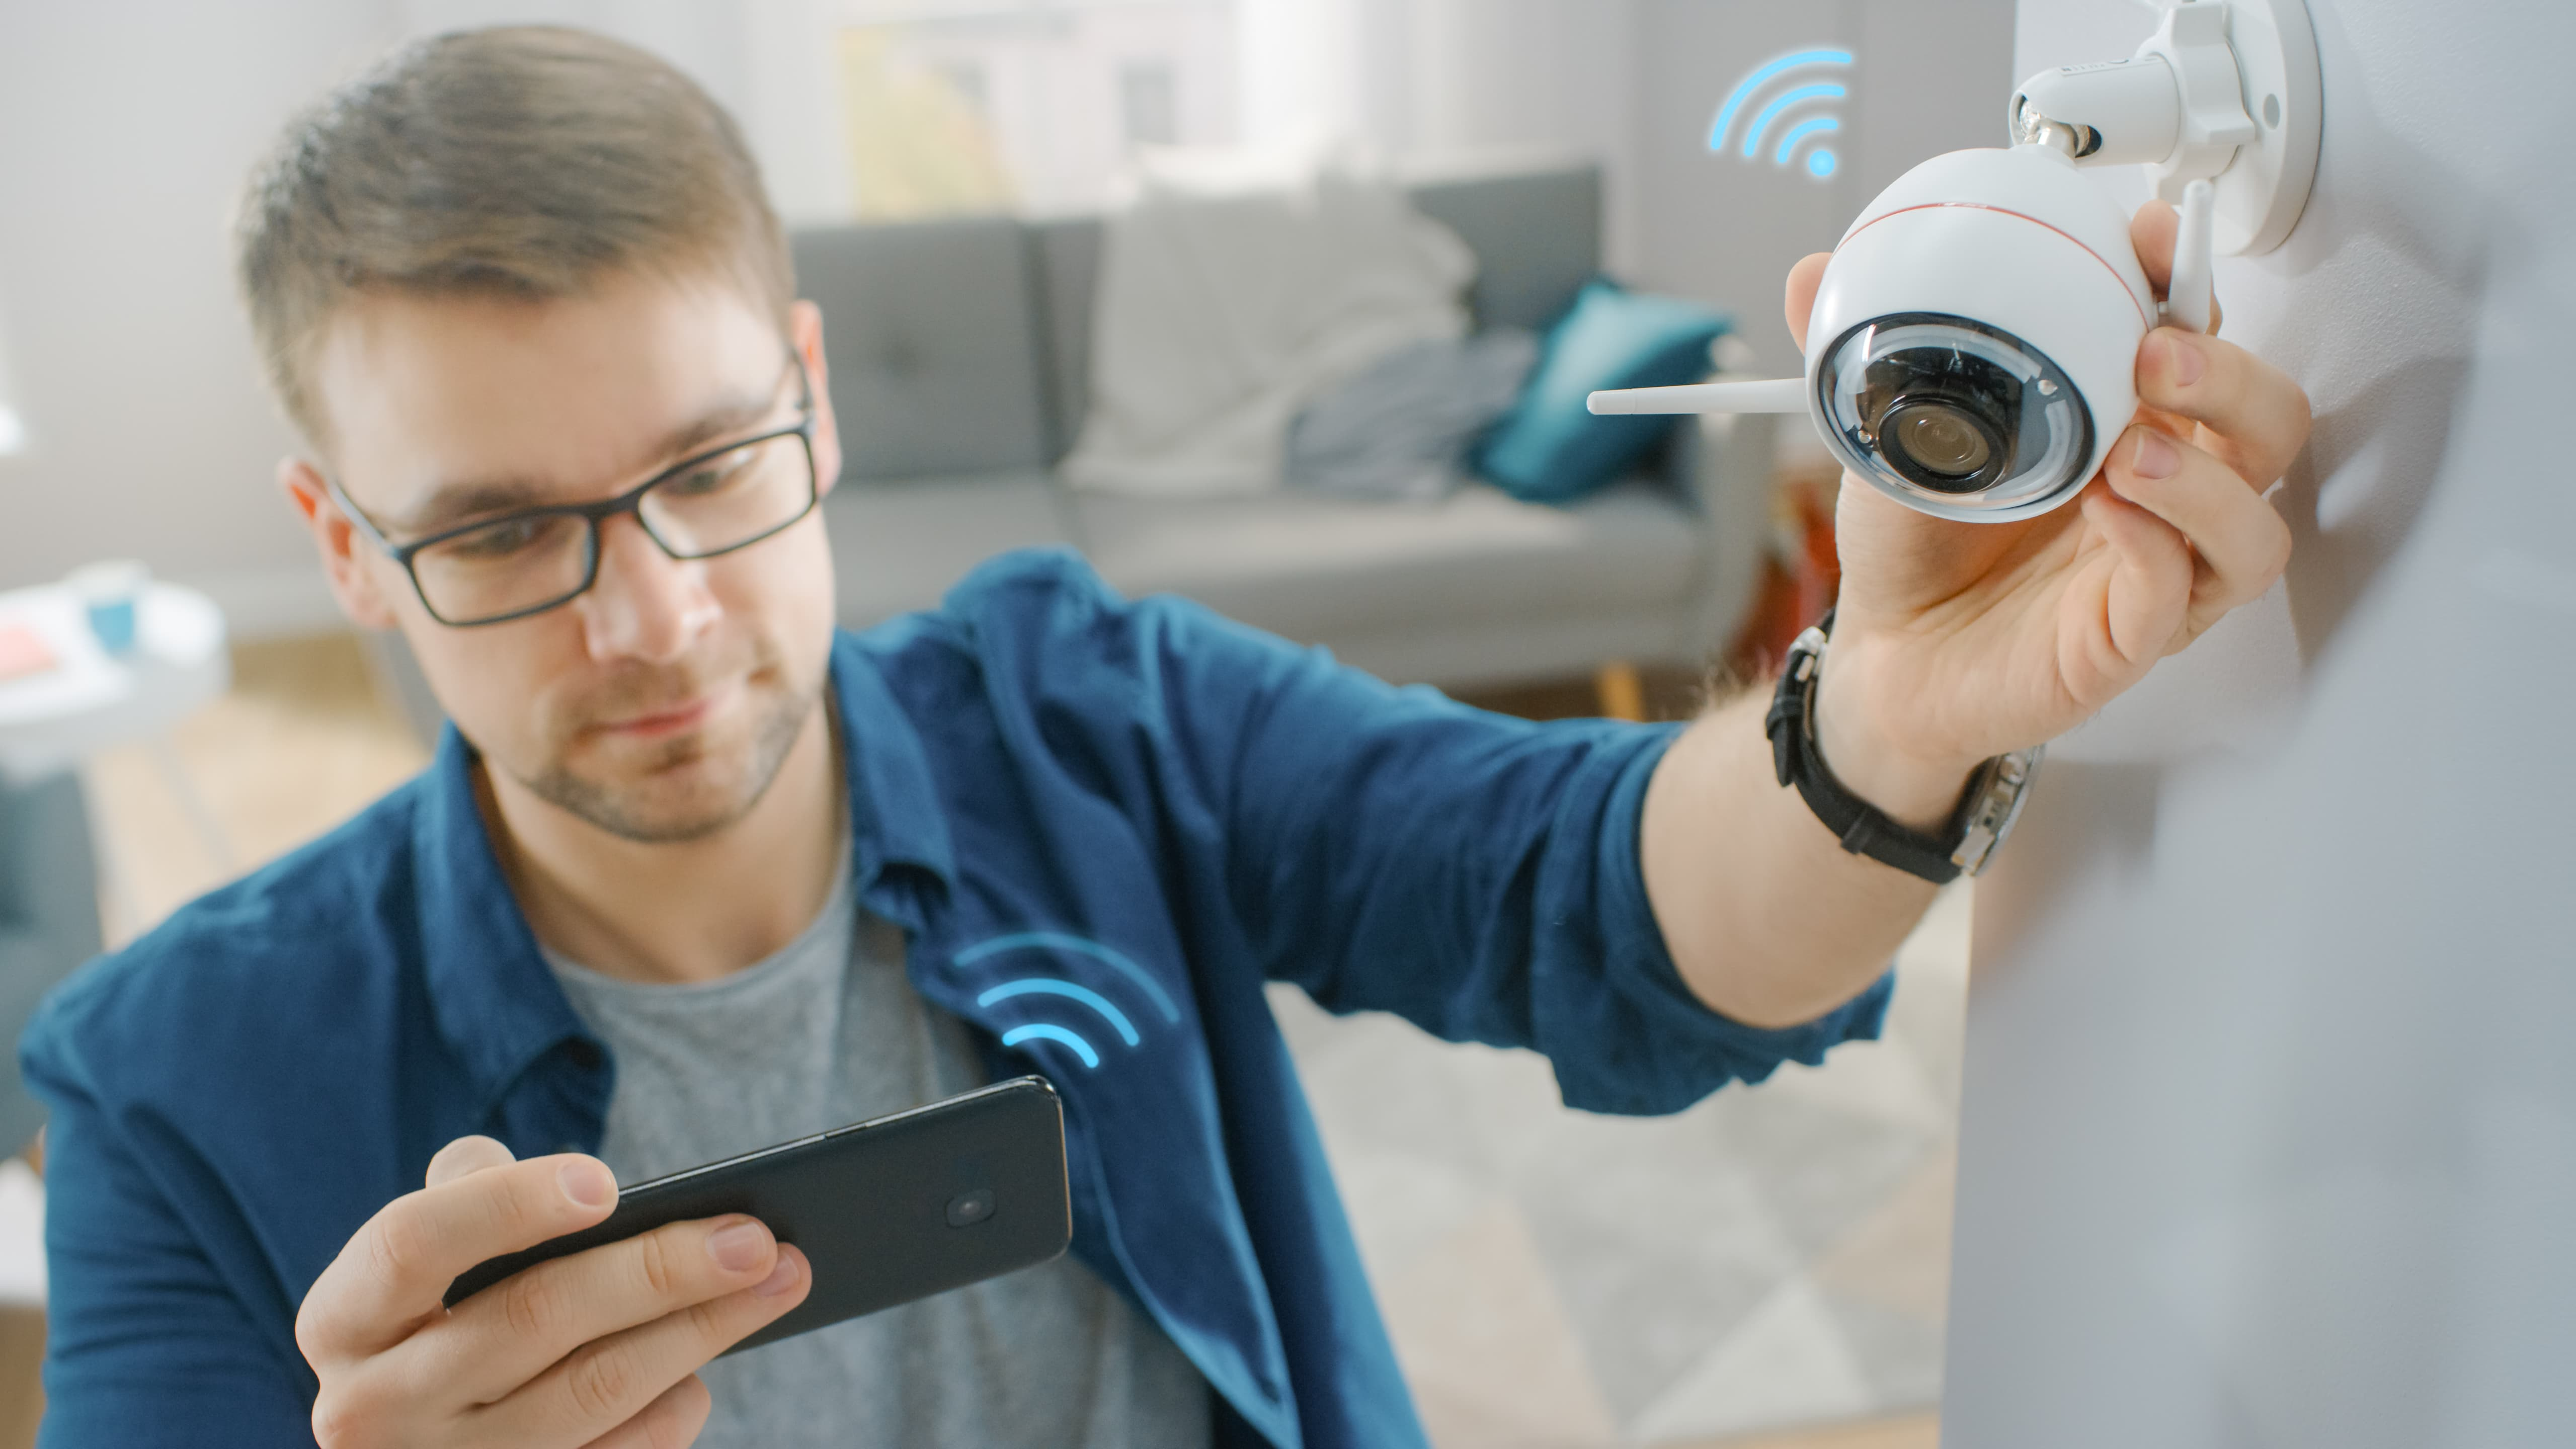 Man adjusting smart home security camera with phone